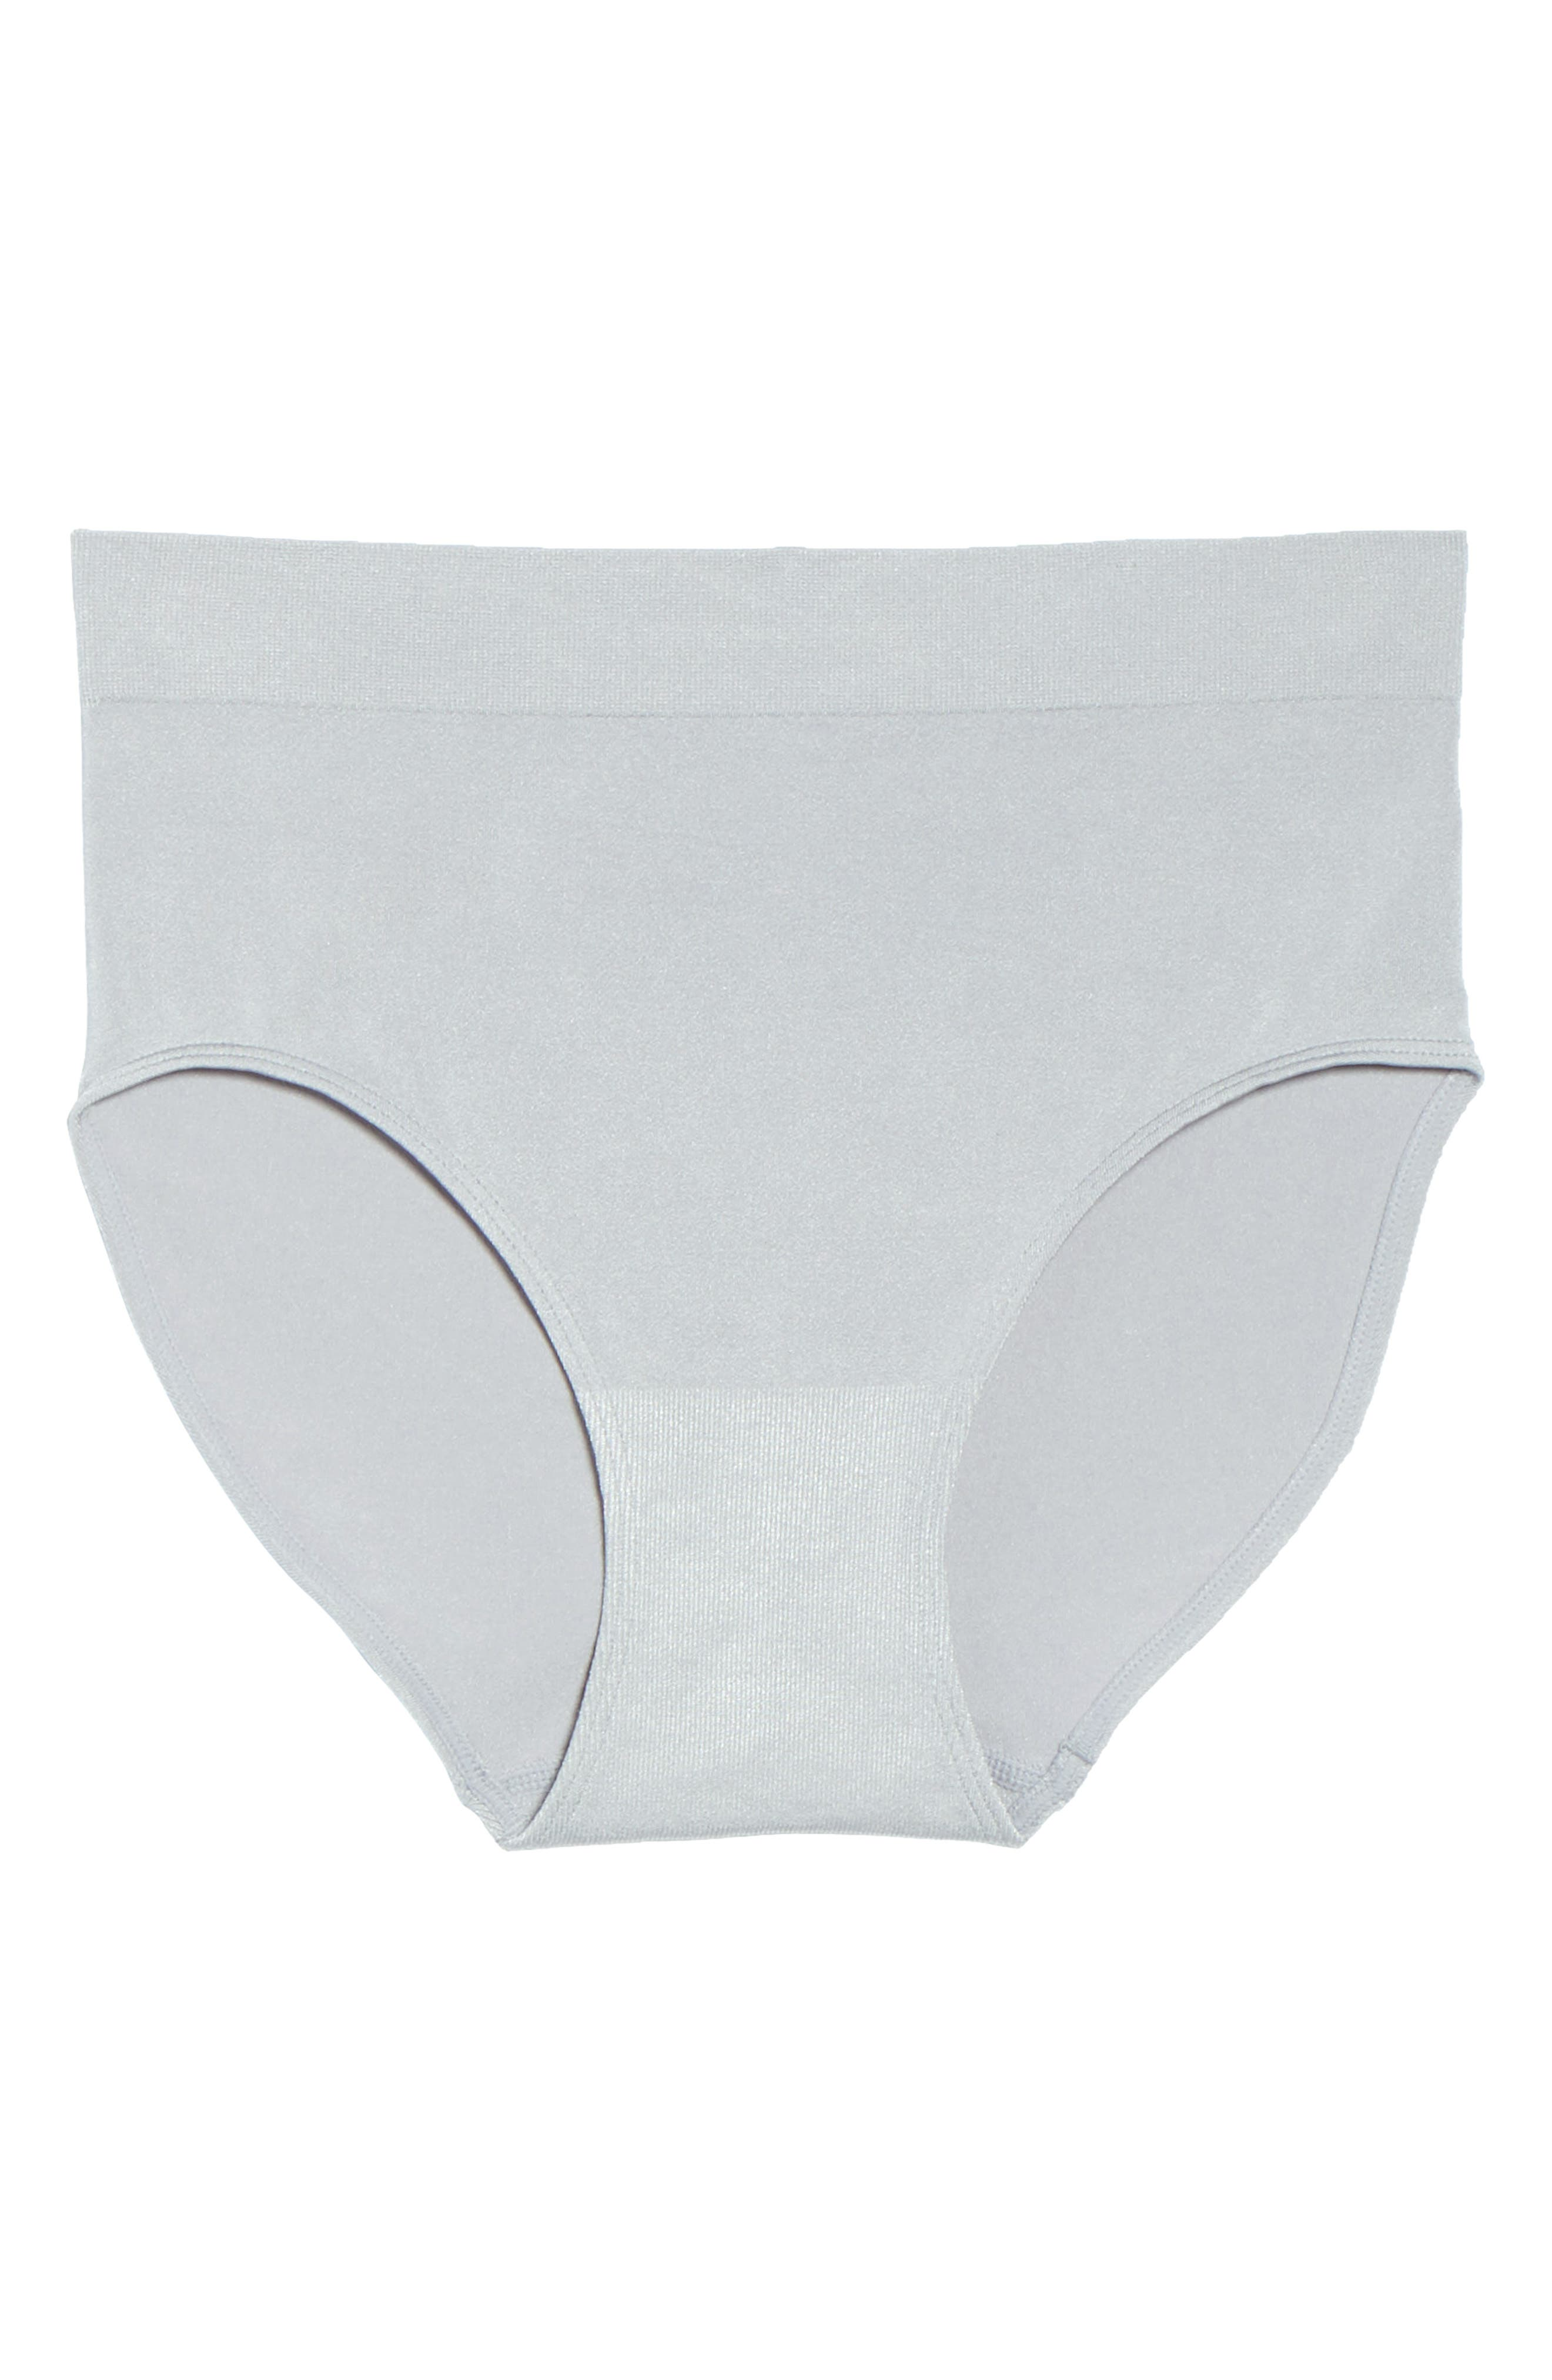 B Smooth Briefs,                             Alternate thumbnail 265, color,